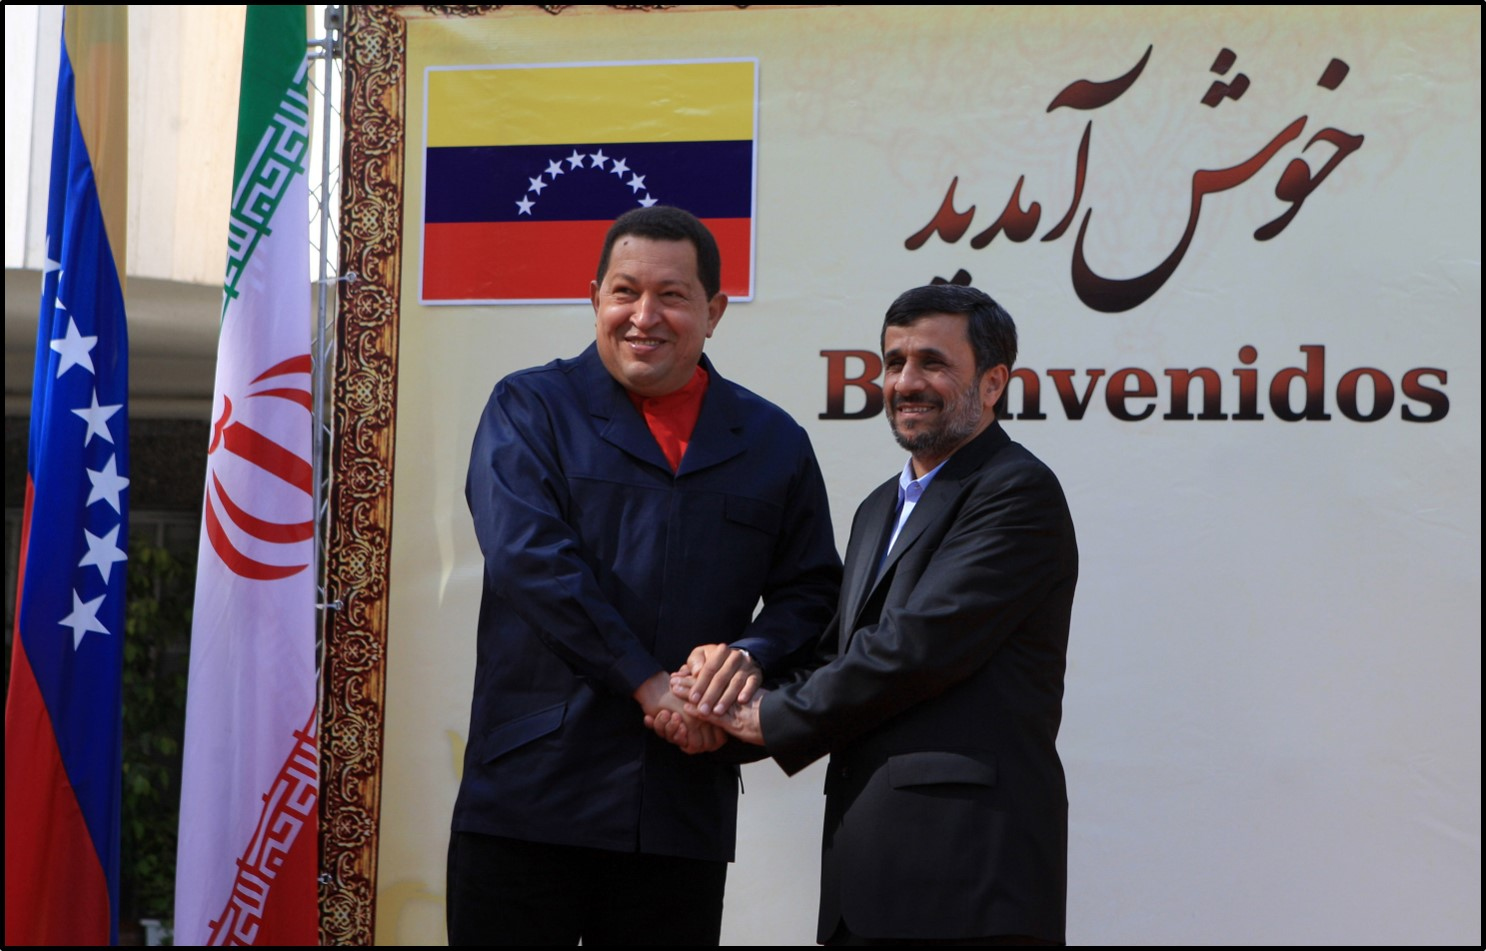 Chavez meets with Ahmadinejad